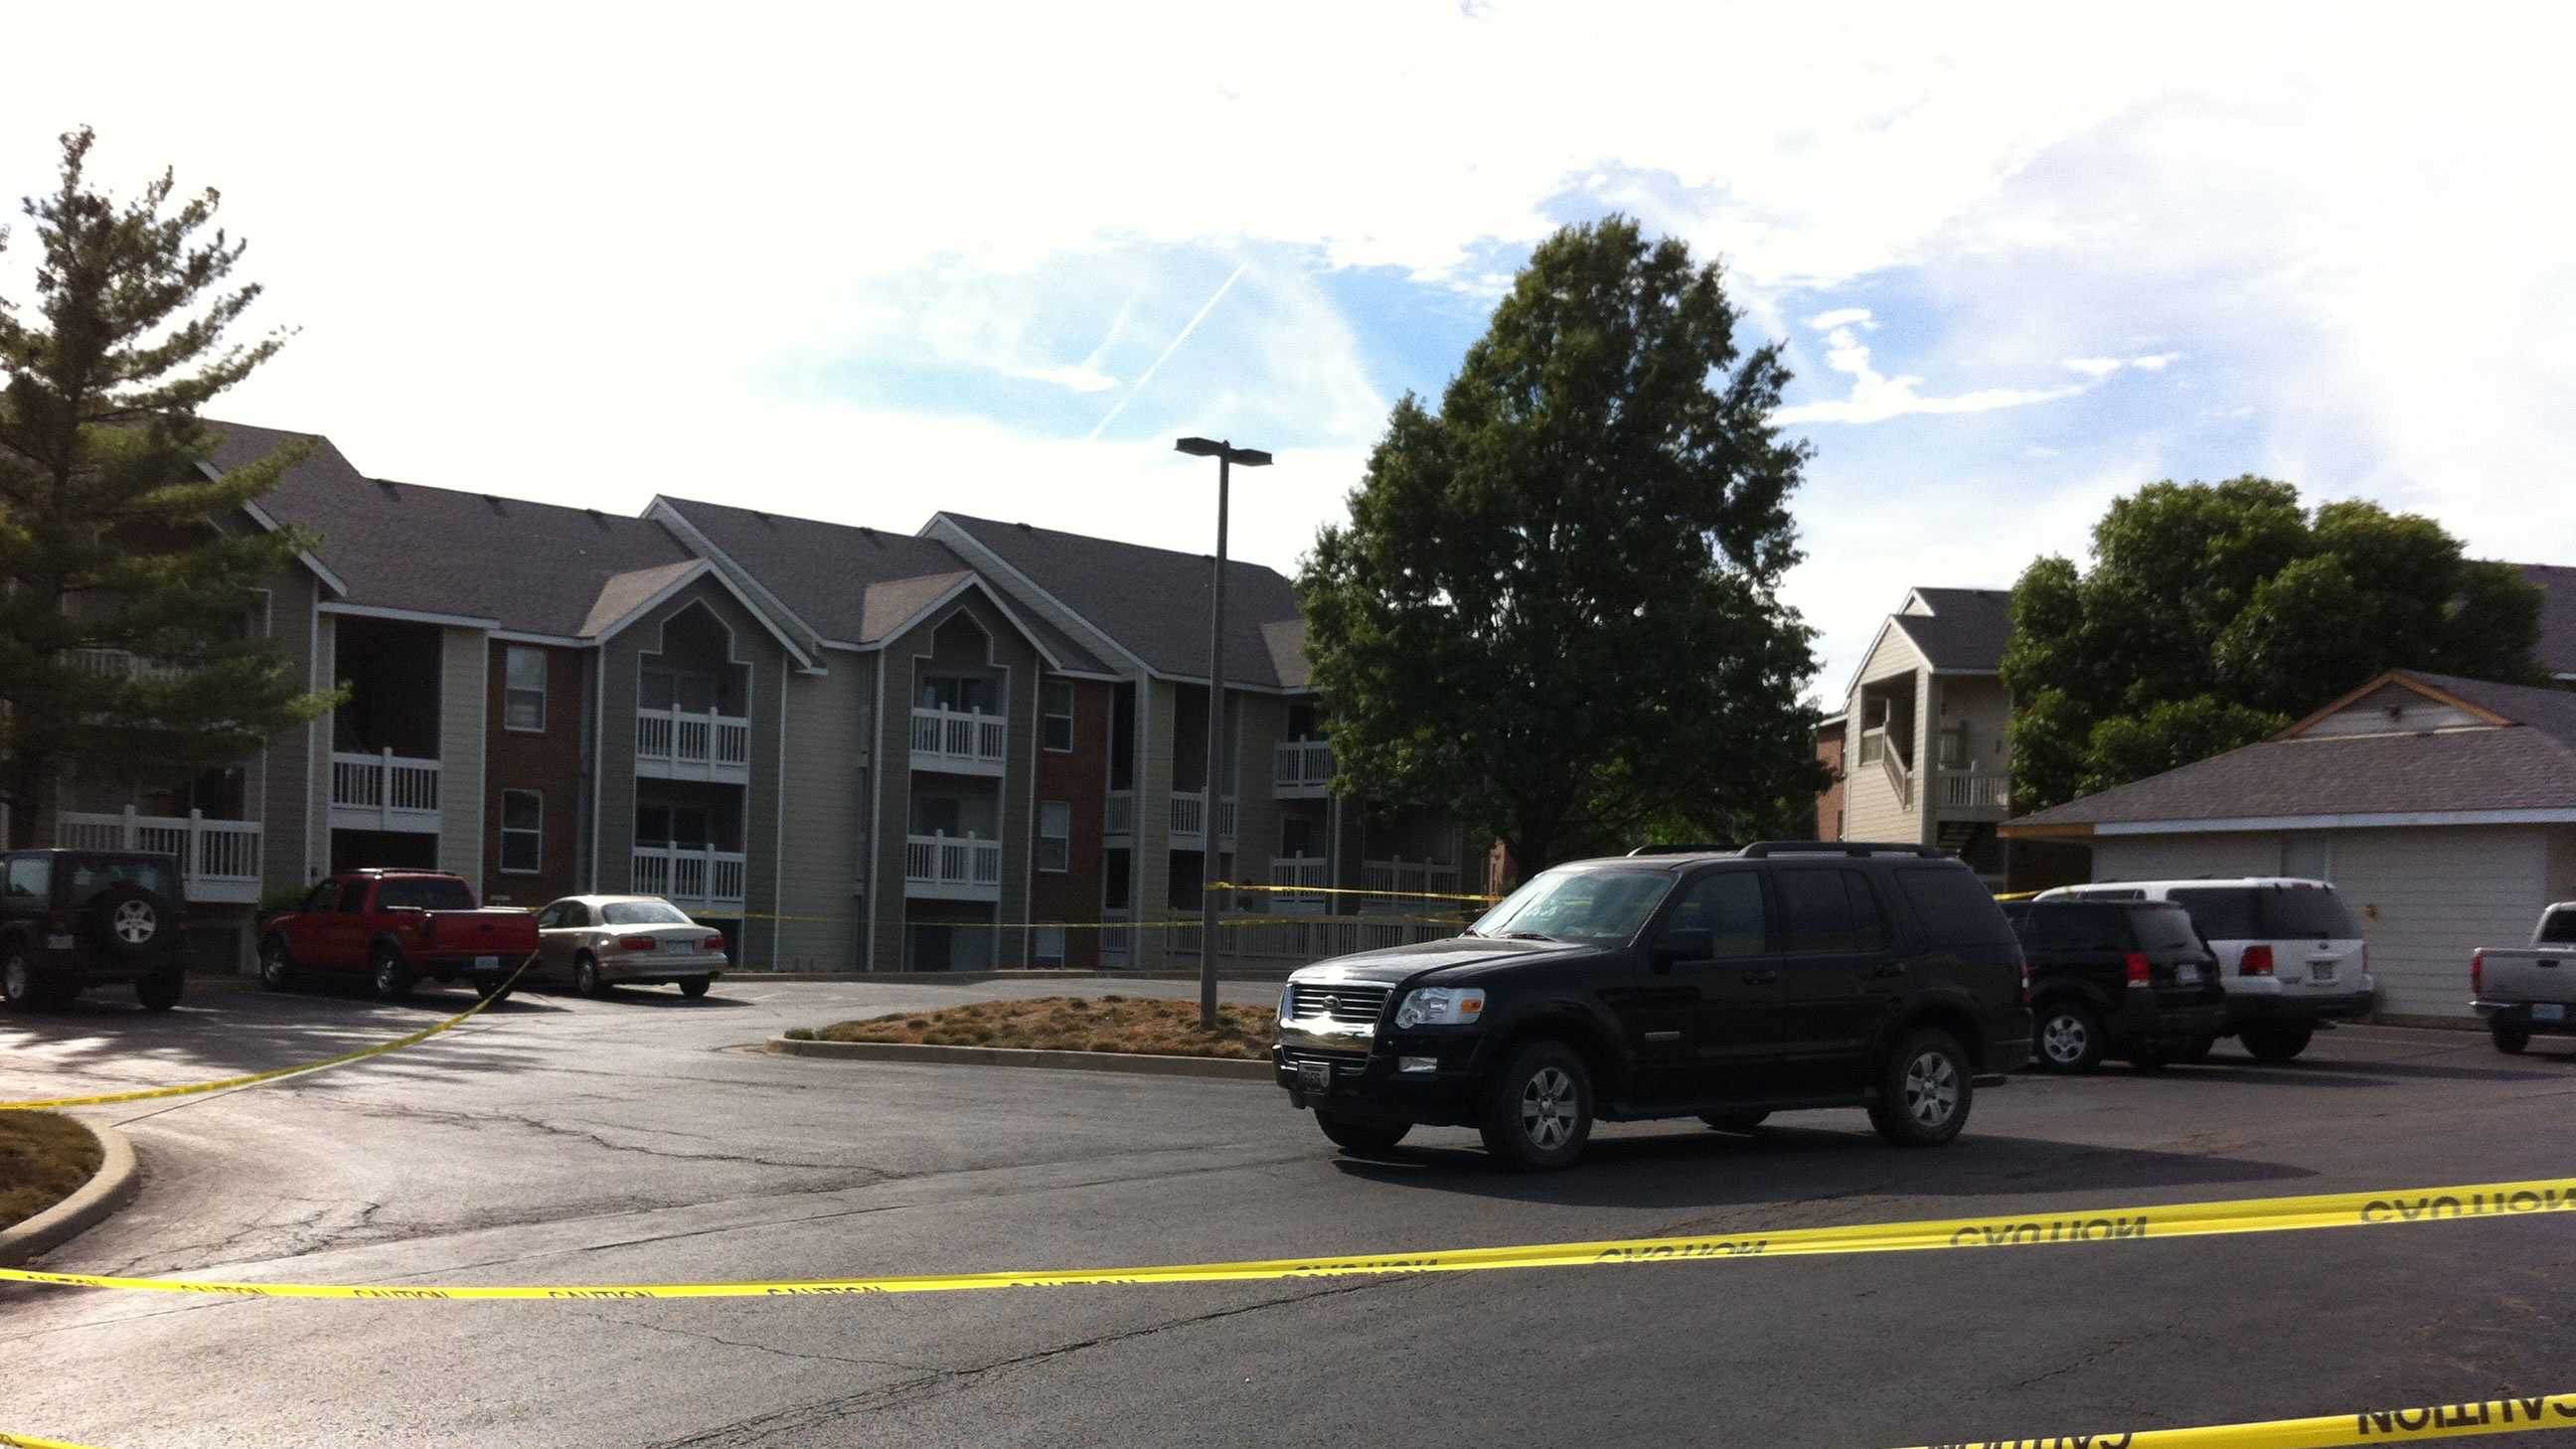 Northland fatal shooting image 2